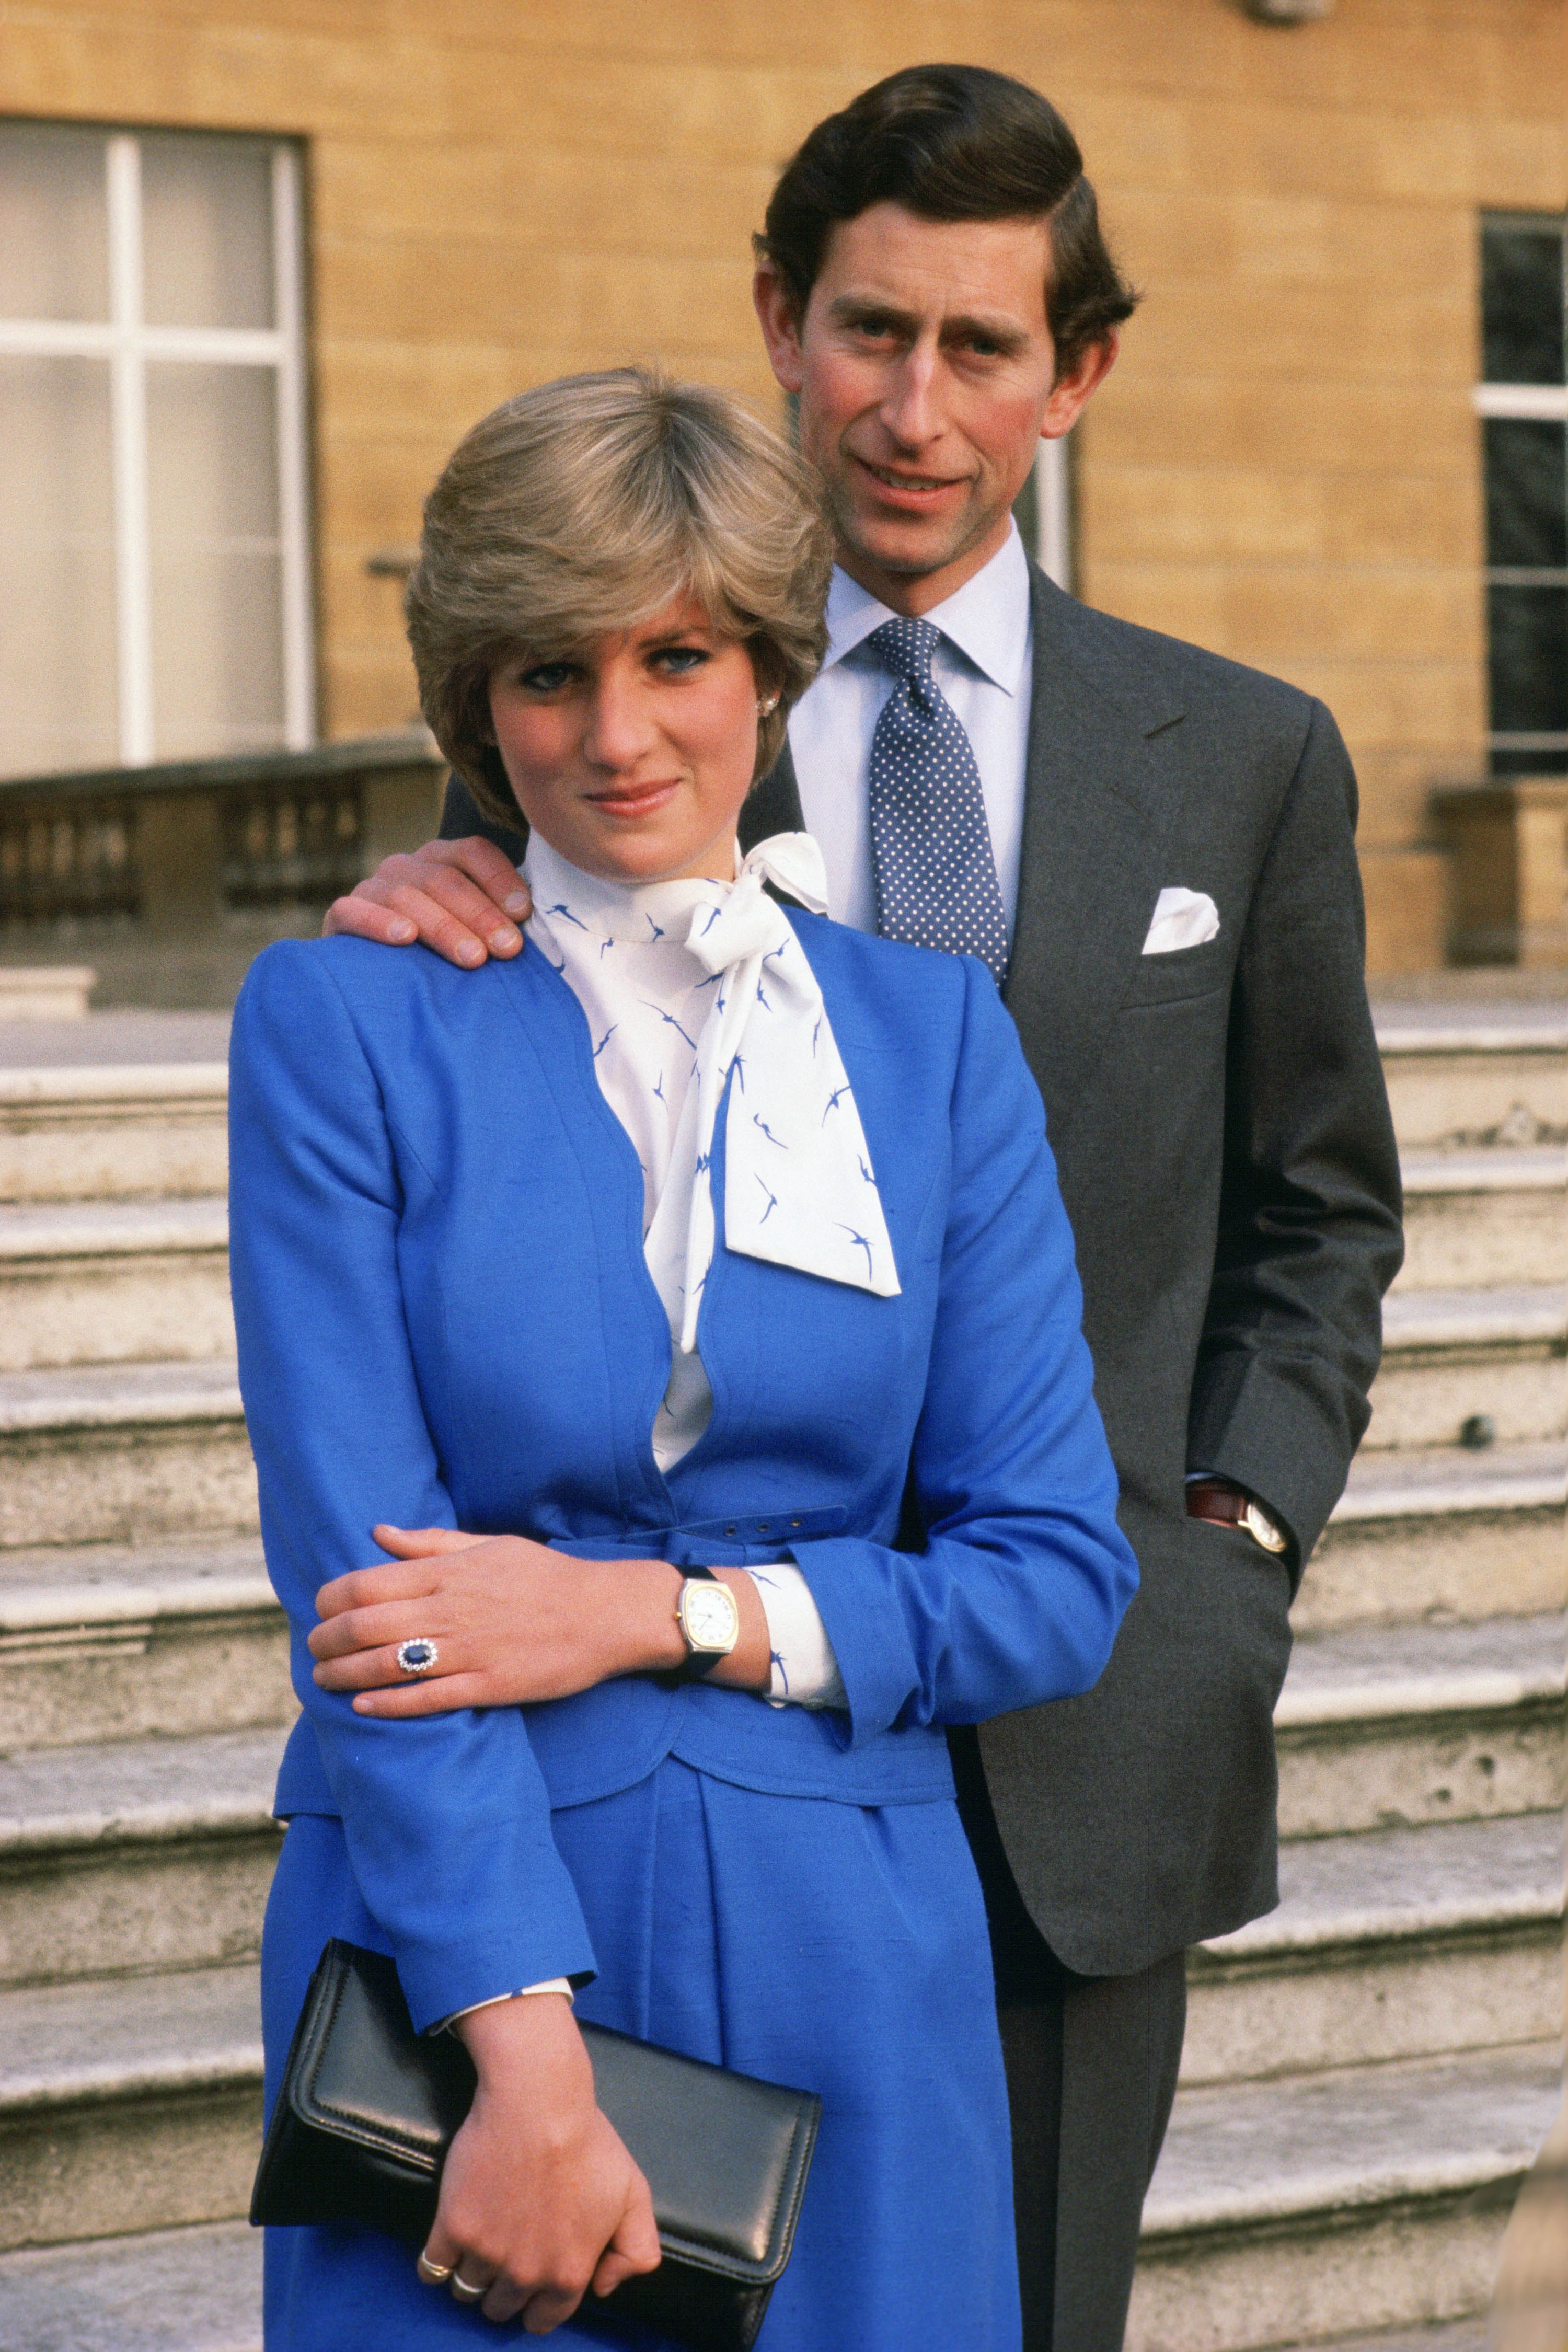 Princess Diana Made a Major Faux Pas During Her First Christmas with the Royal Family